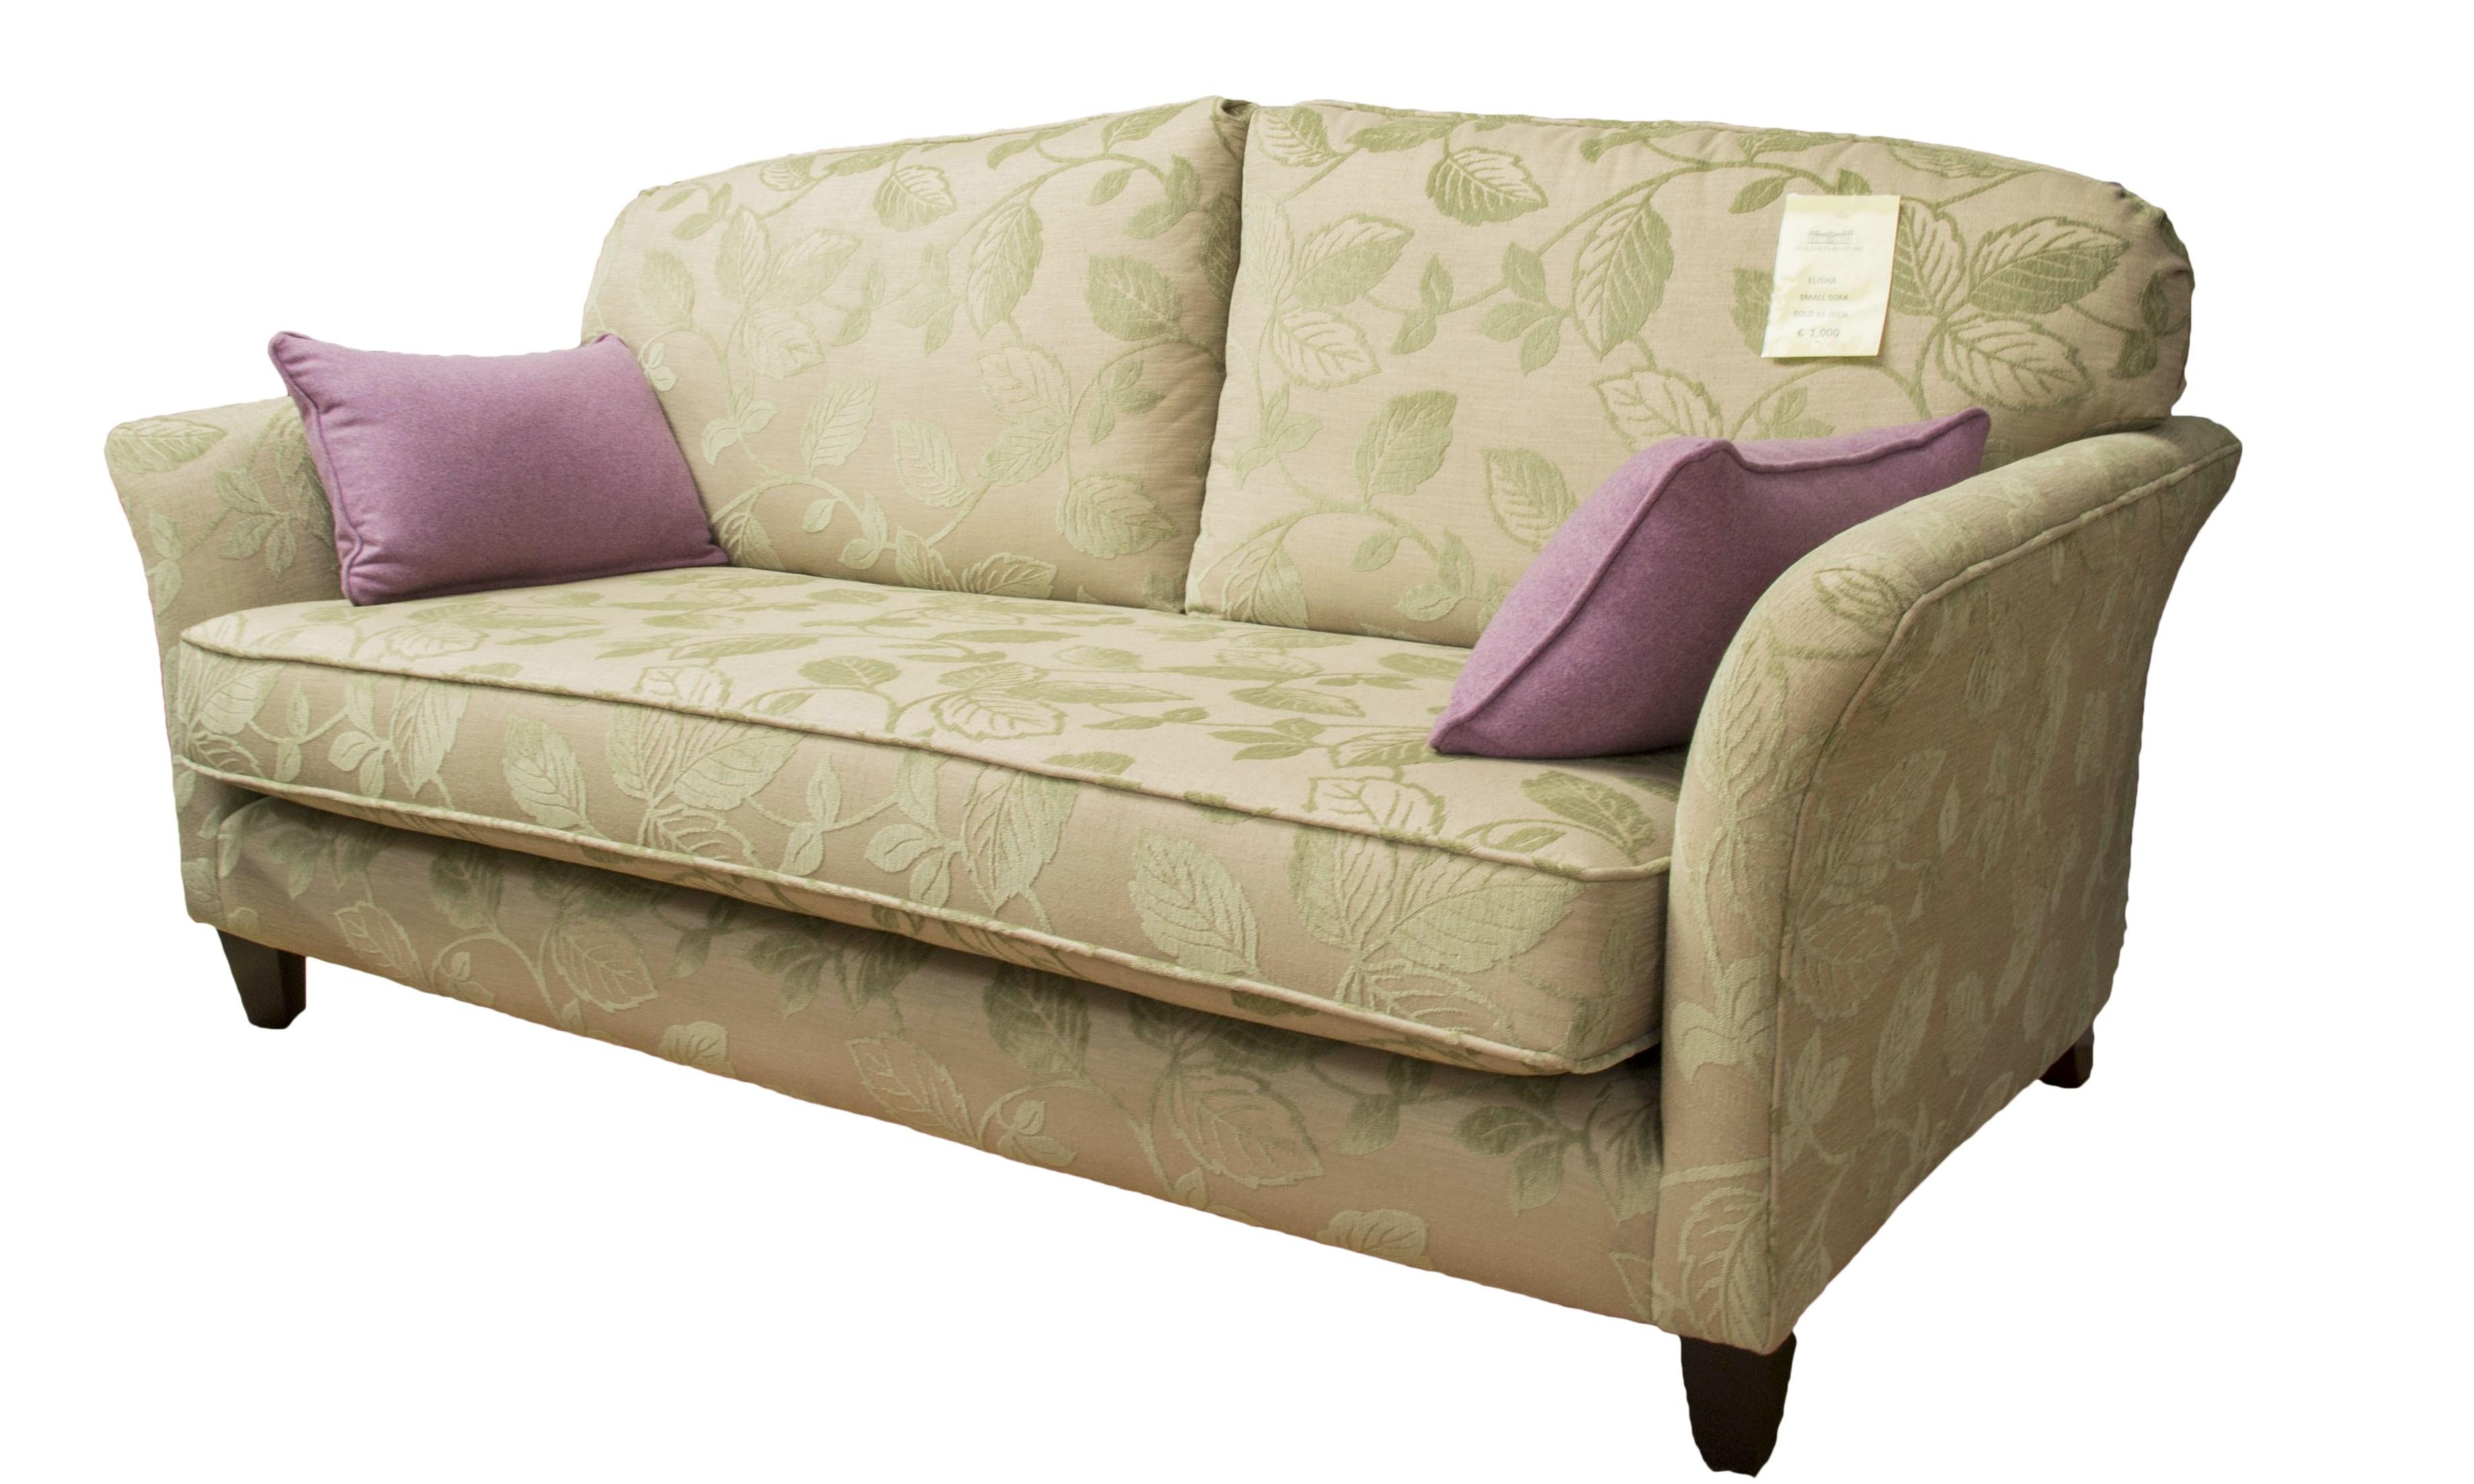 Sofas Center : Small Sofa Chair Chaise Lounge Sectional With With Small Sofas And Chairs (Image 17 of 20)